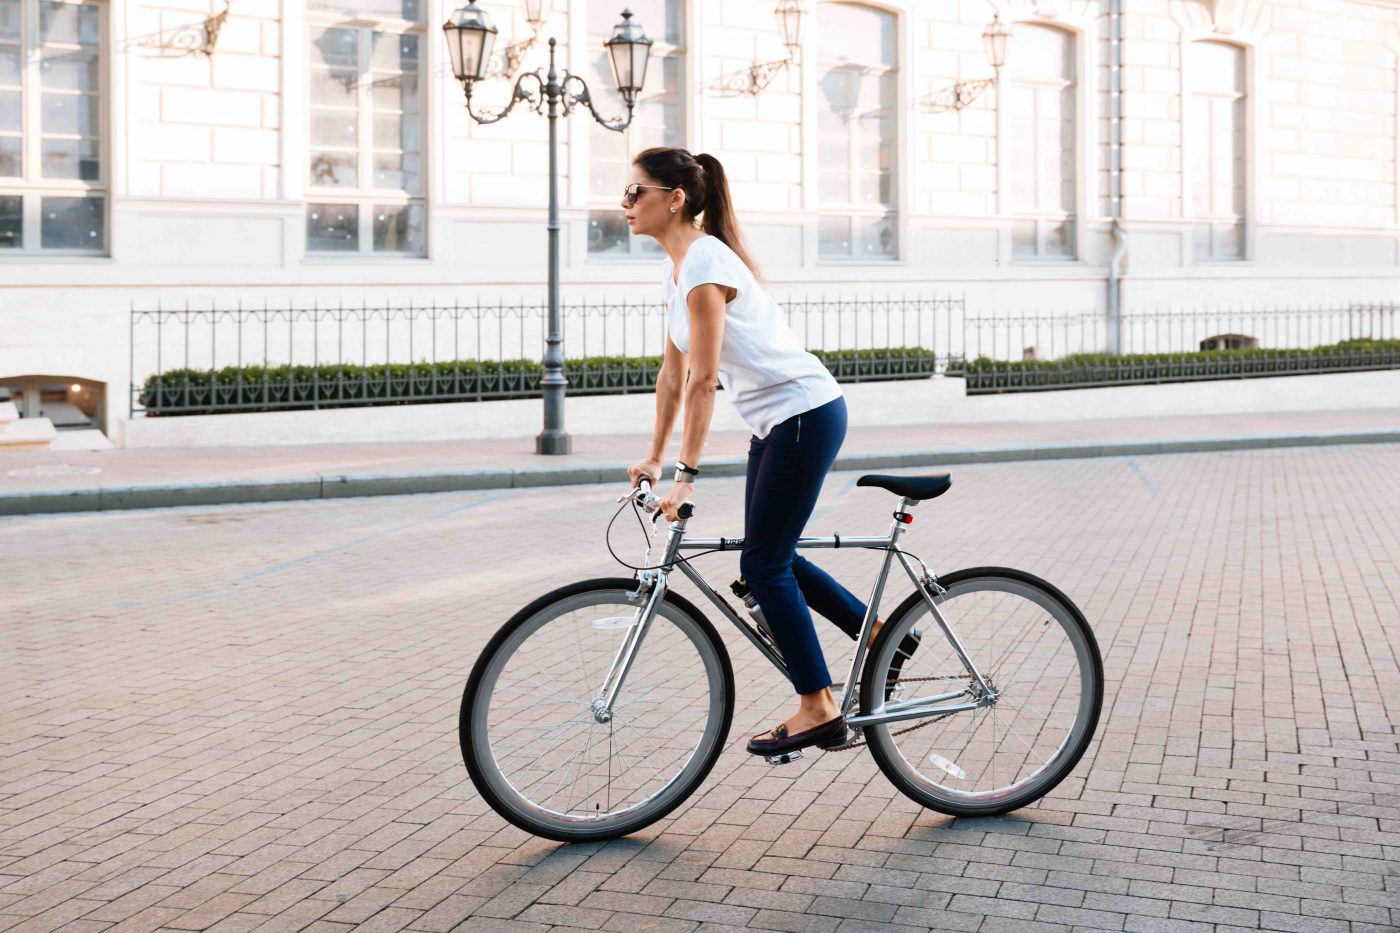 Girl-biking.